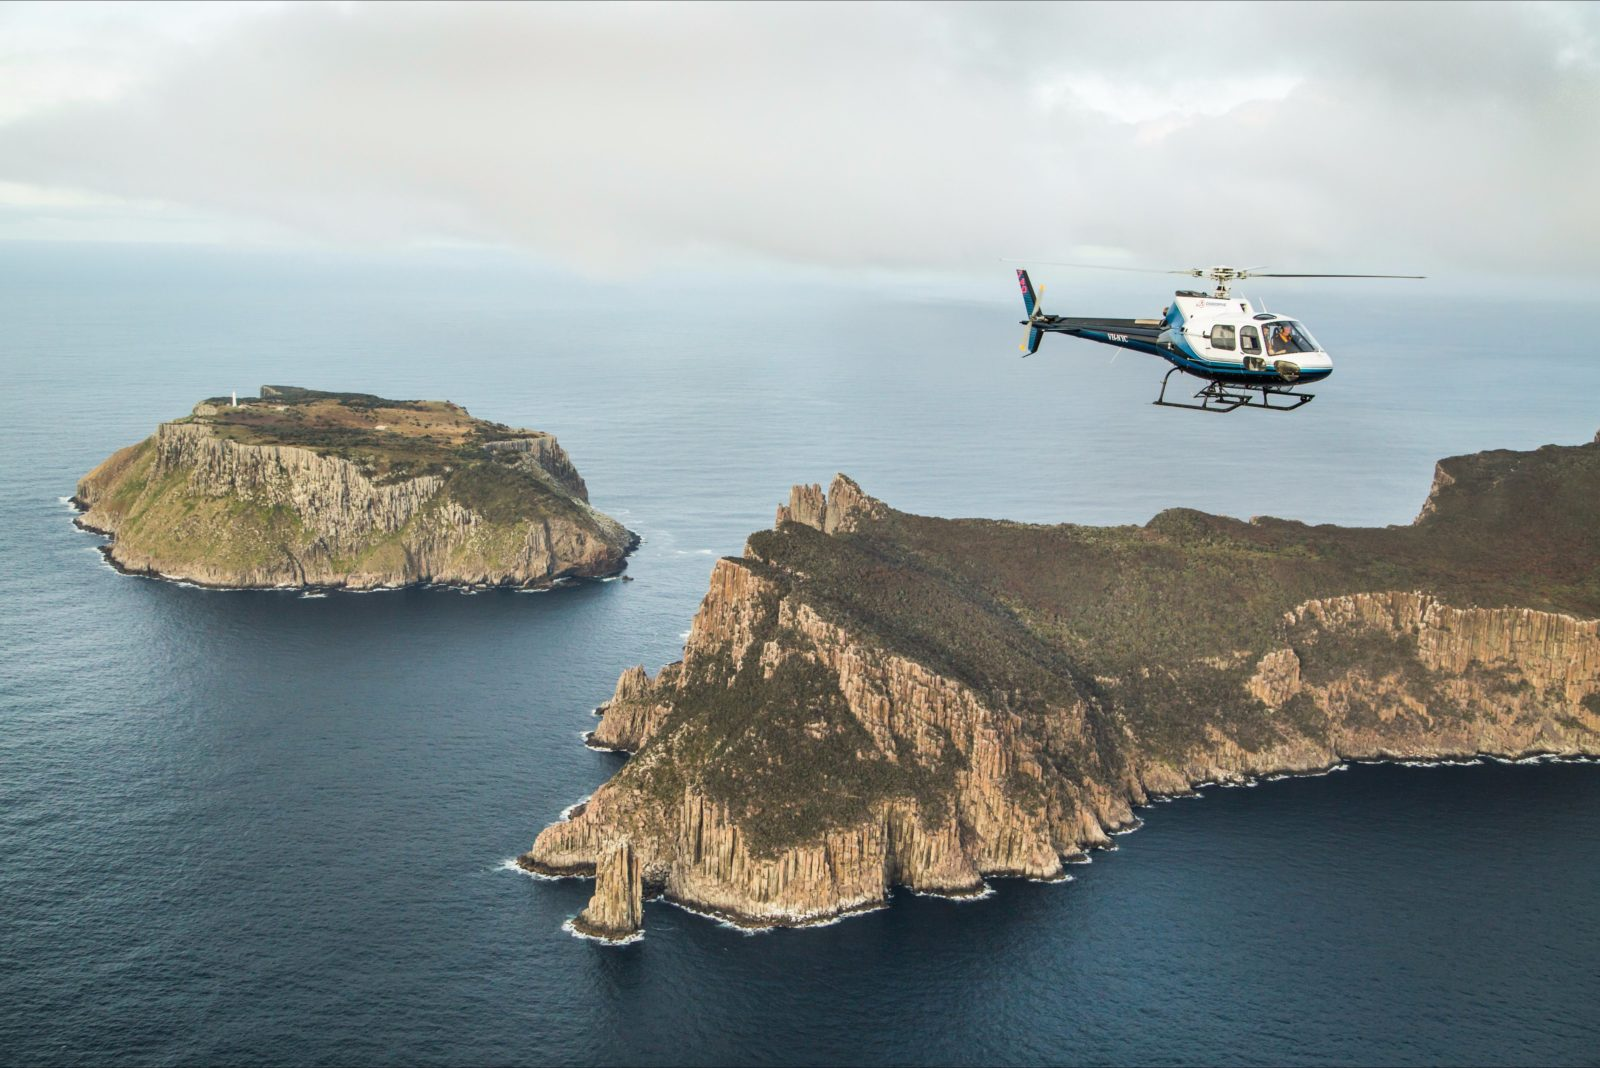 An Osborne helicopter flying above Cape Pillar with Tasman Island in the background